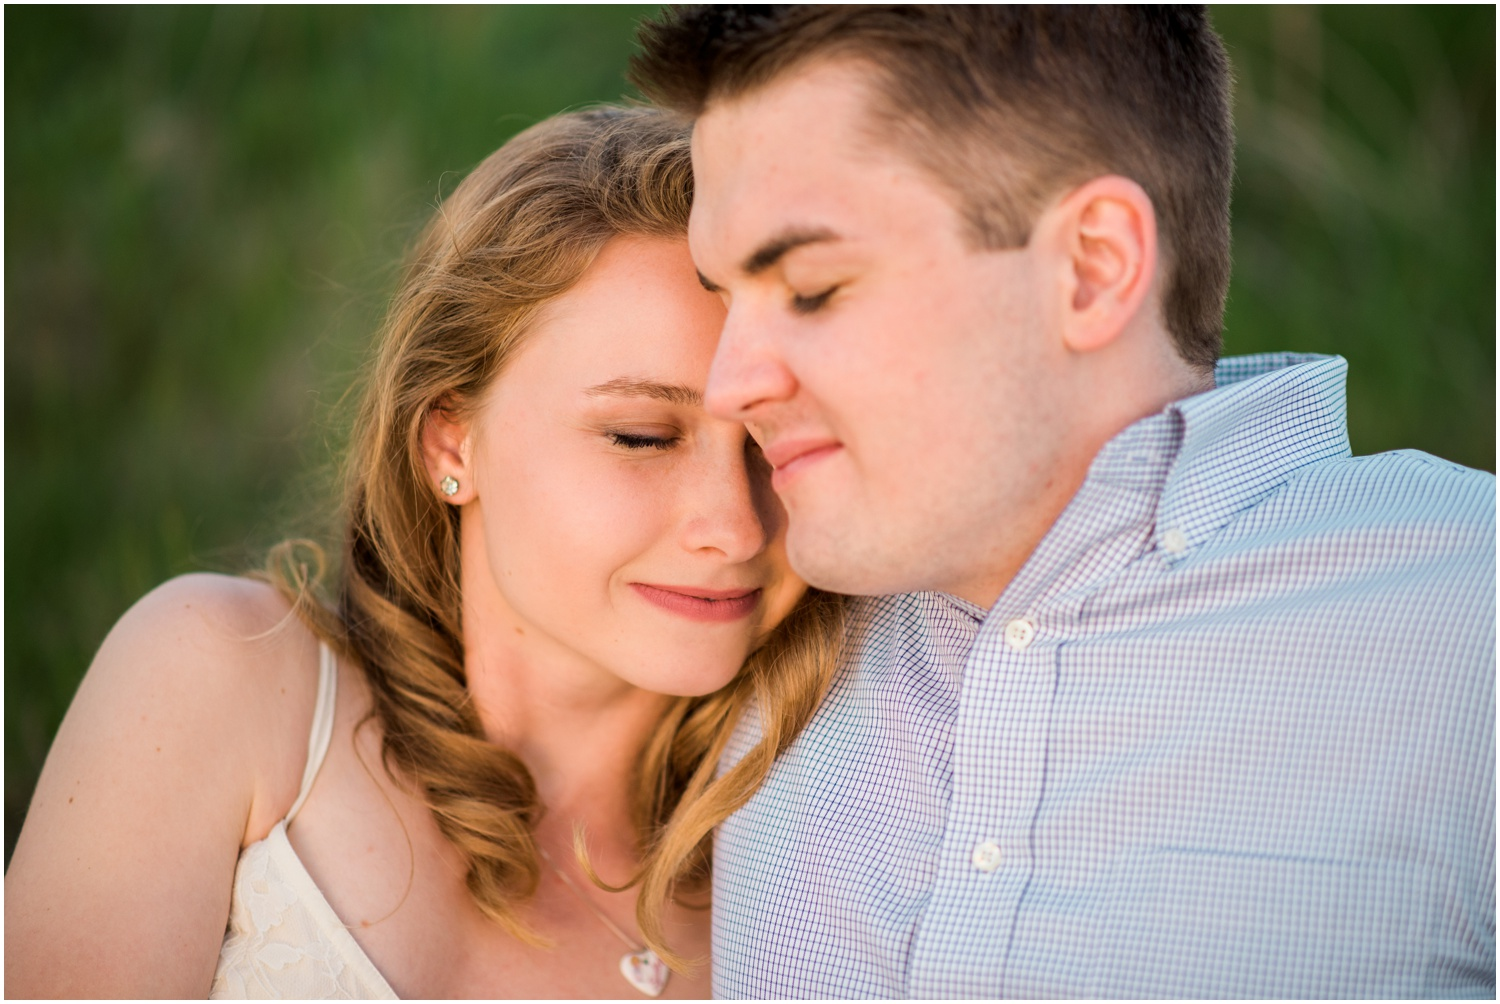 UW_Madison_Arboretum_Madison_WI_Engagement_Photos_Sydney_and_Tim_0036.jpg